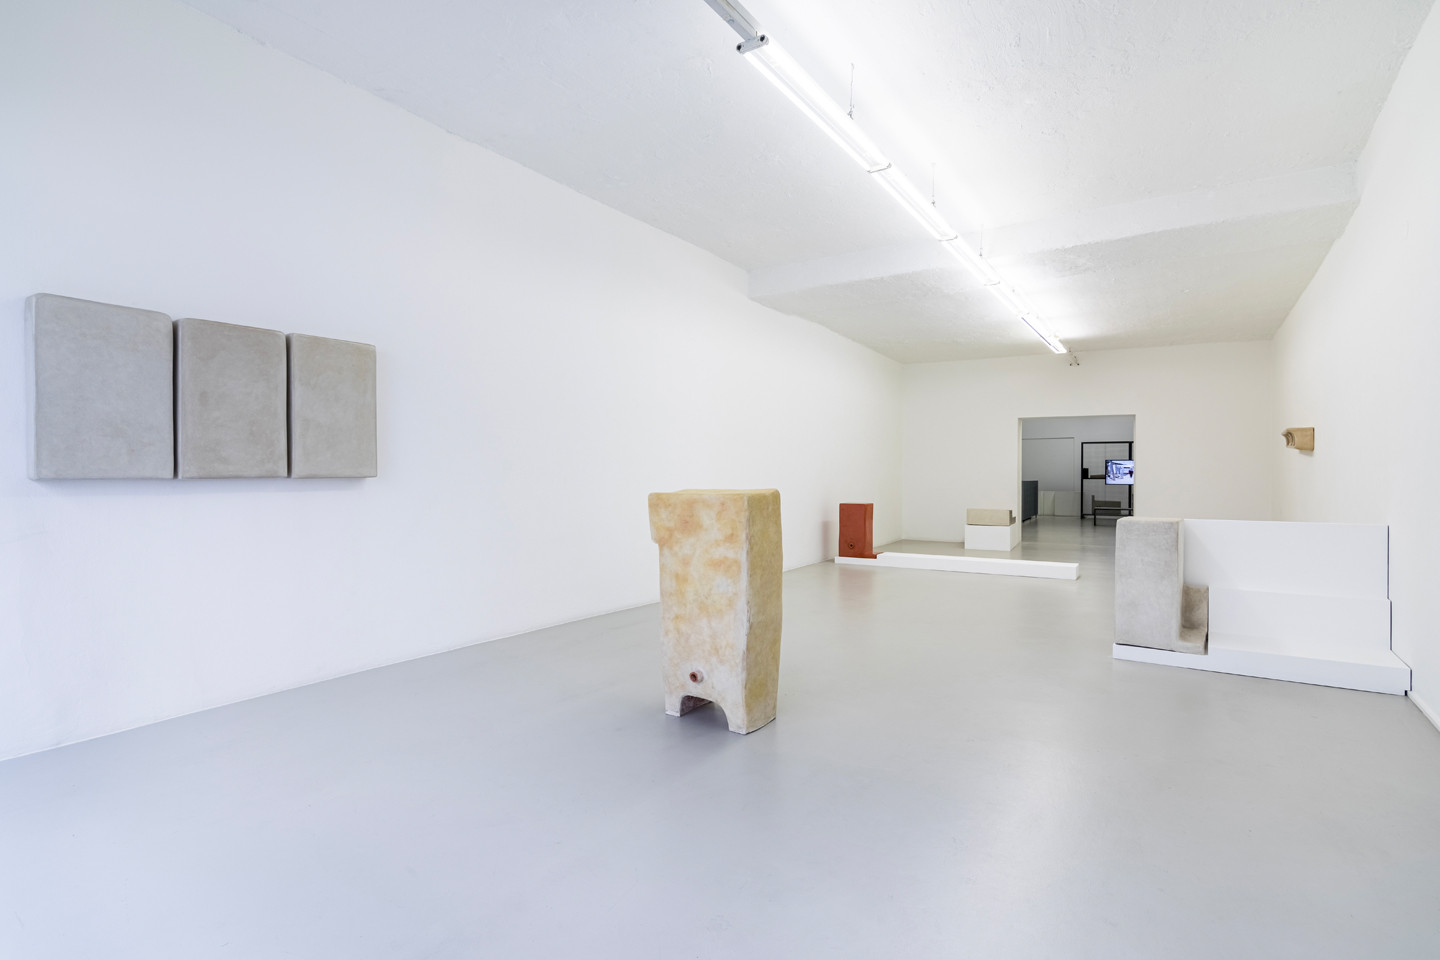 Cache (Insurance Policy), installation view, ar/ge Kunst, 2019. Photo: Luca Guadagnini